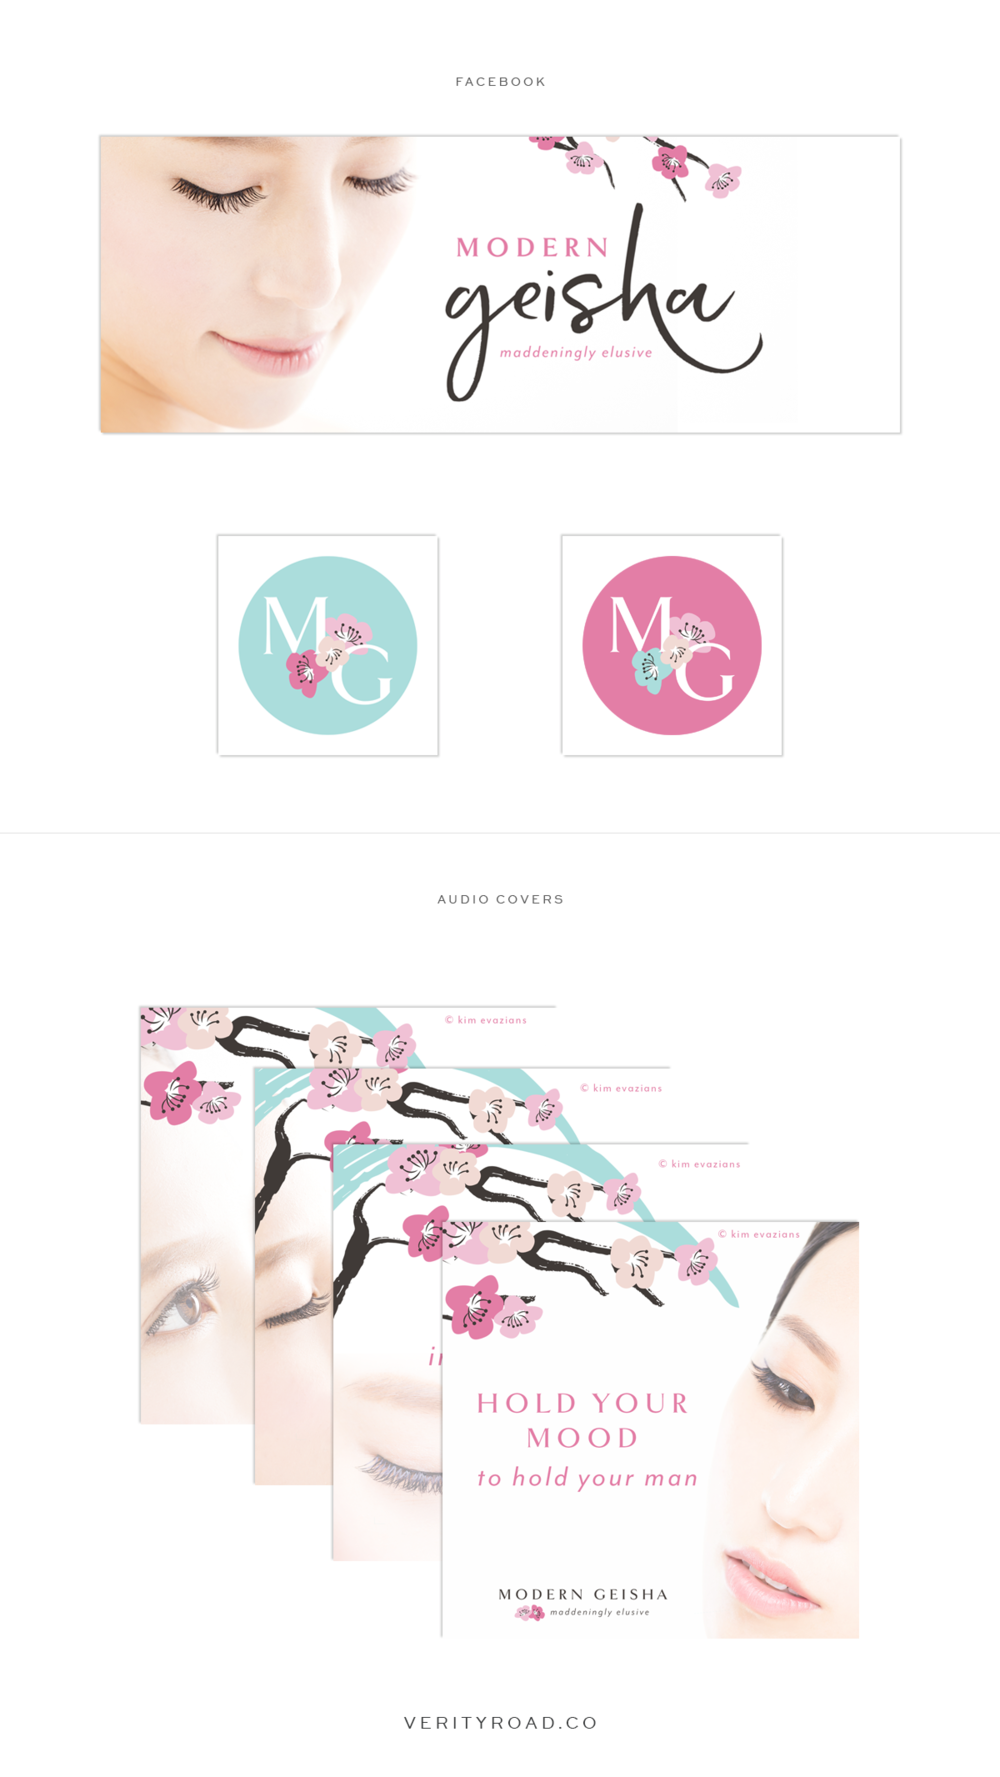 social media branding for verity road, luxury brand styling and web design for female entrepreneurs. feminine branding Inspiration board of typography, script font,  color palette, brush script font, serif, brown, pink, blush, tiffany blue color palette,  japanese fans, cherry blossom flowers, femininity, FLORAL pattern, business owner. instagram, pinterest, blog pin graphic, facebook cover. See more for brand board, brand style guide, mood board and web design.